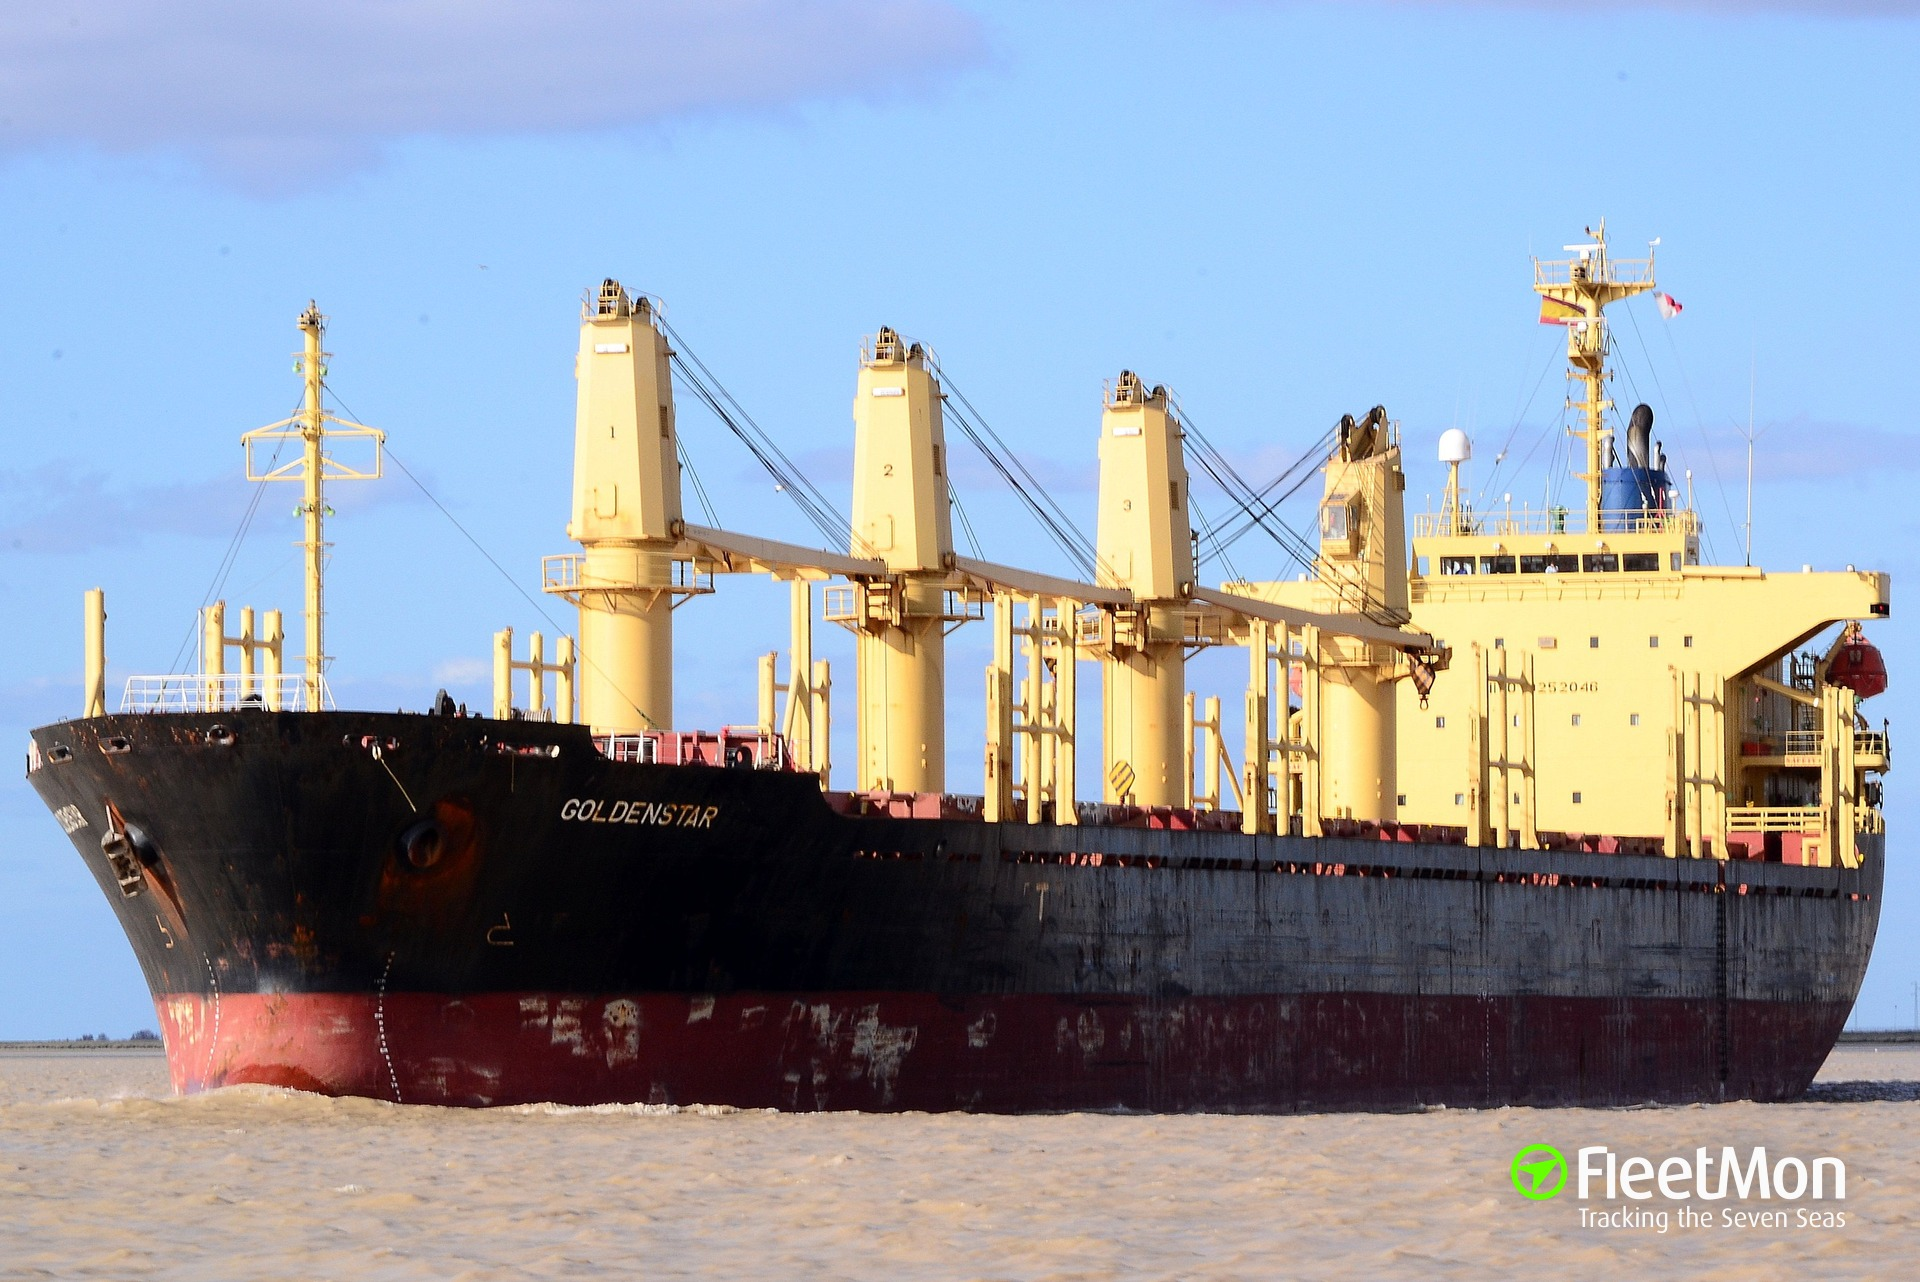 Lost bulk carrier found, under way after engine failure and blackout